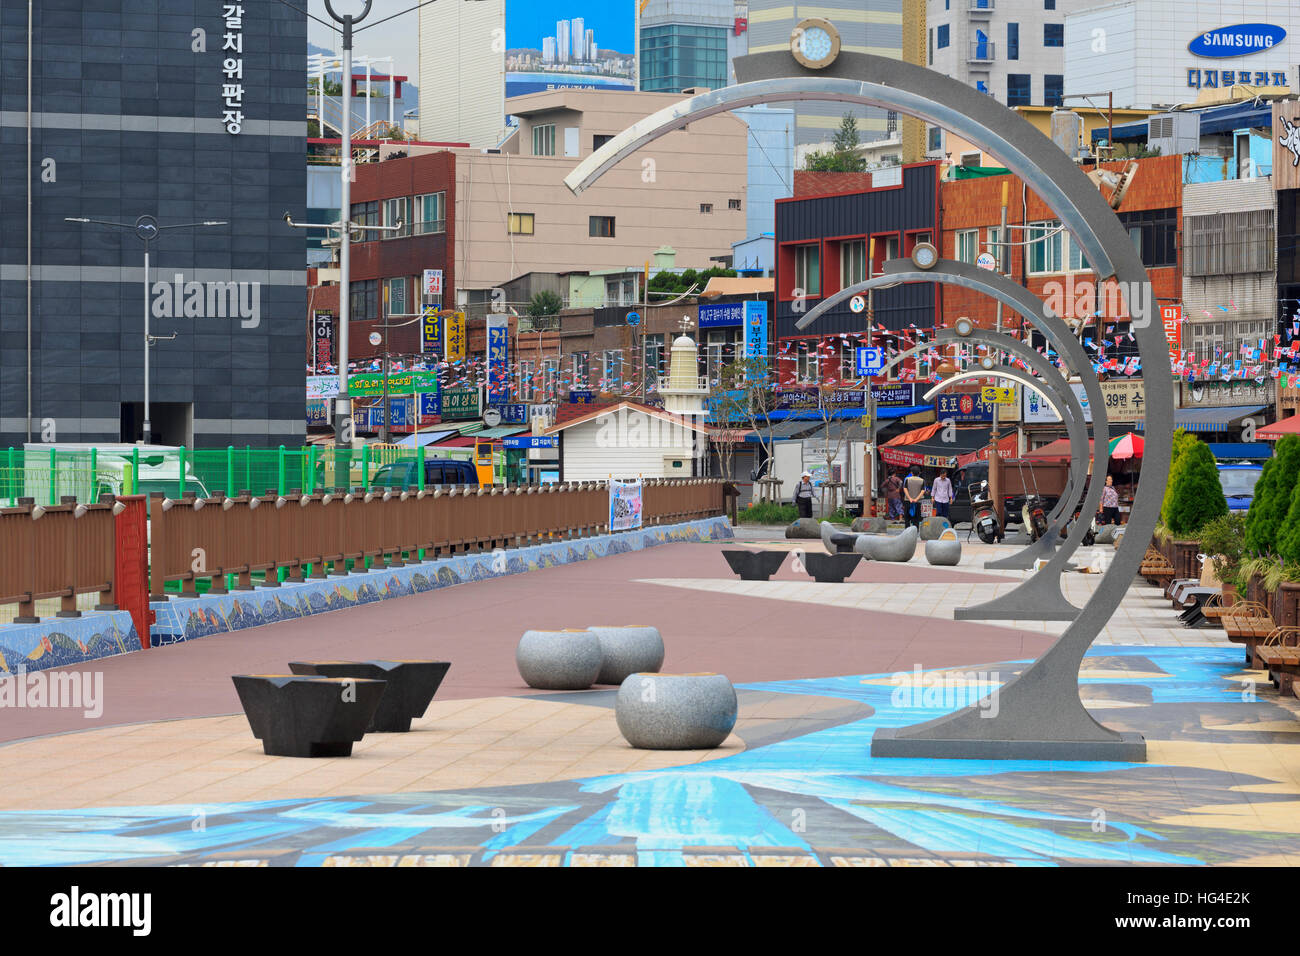 Waterfront Promenade, Nampo District, Busan, South Korea, Asia - Stock Image